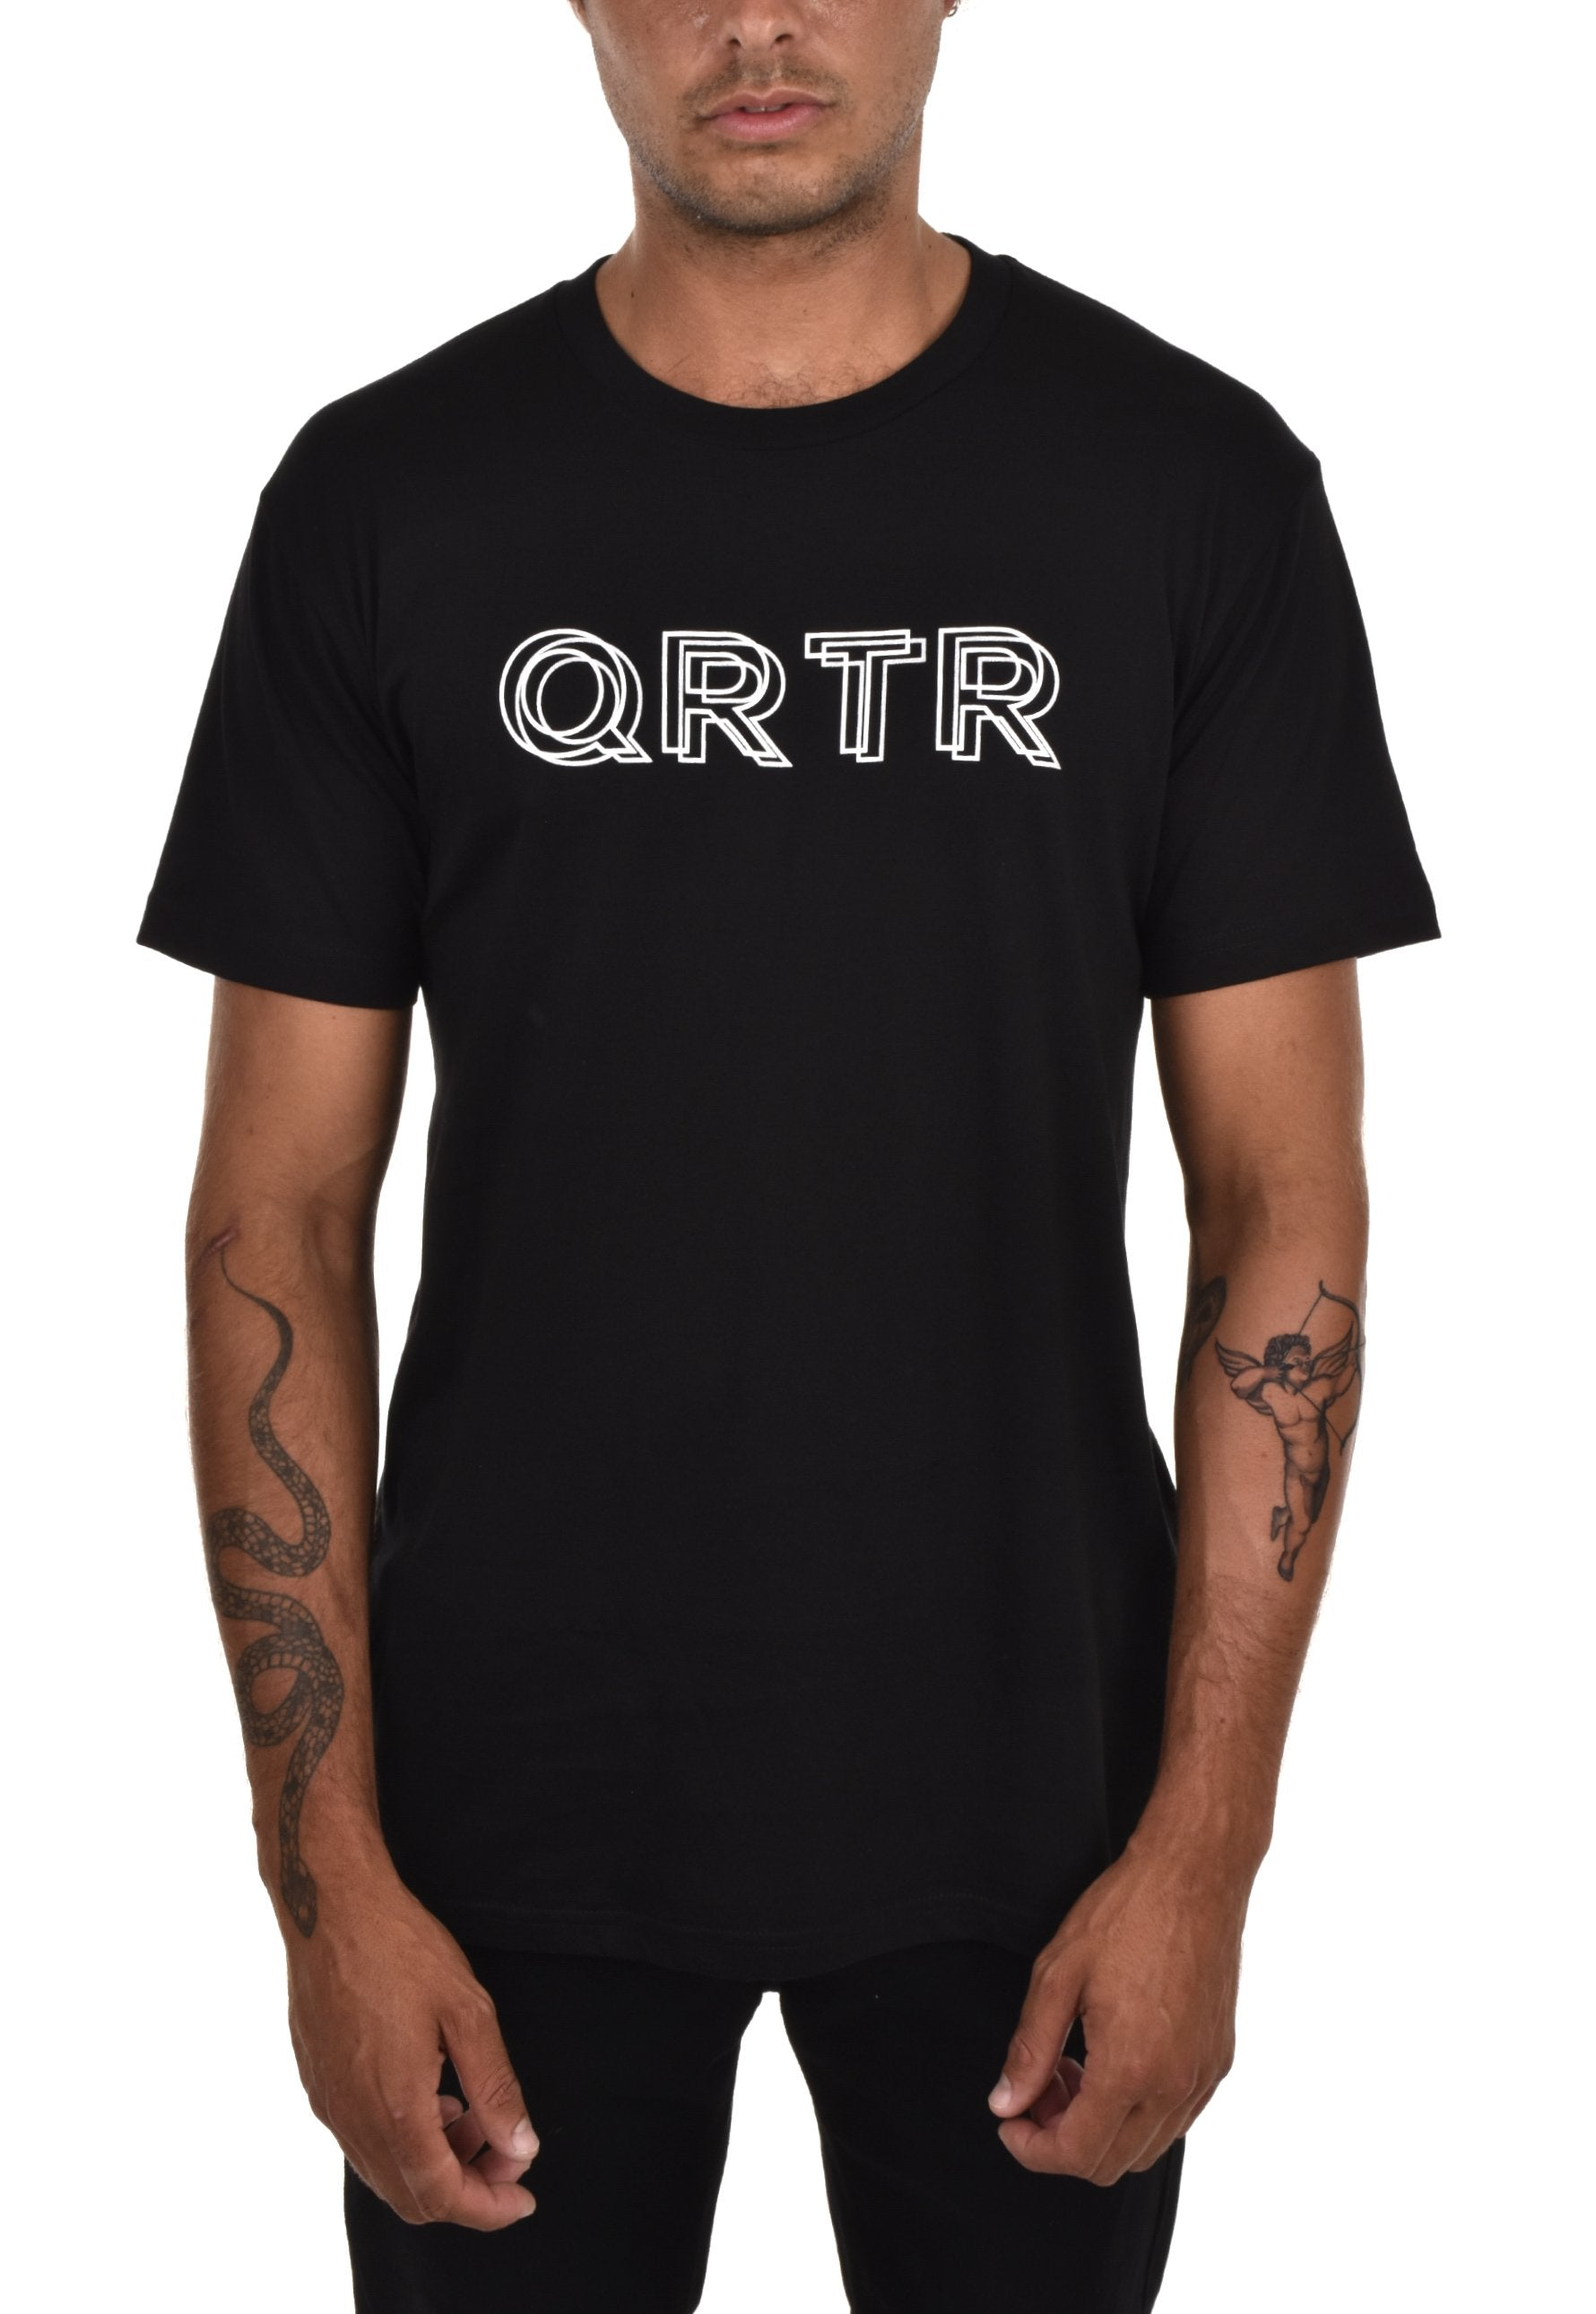 QRTR Metallic Drop Logo T-Shirt - QRTR